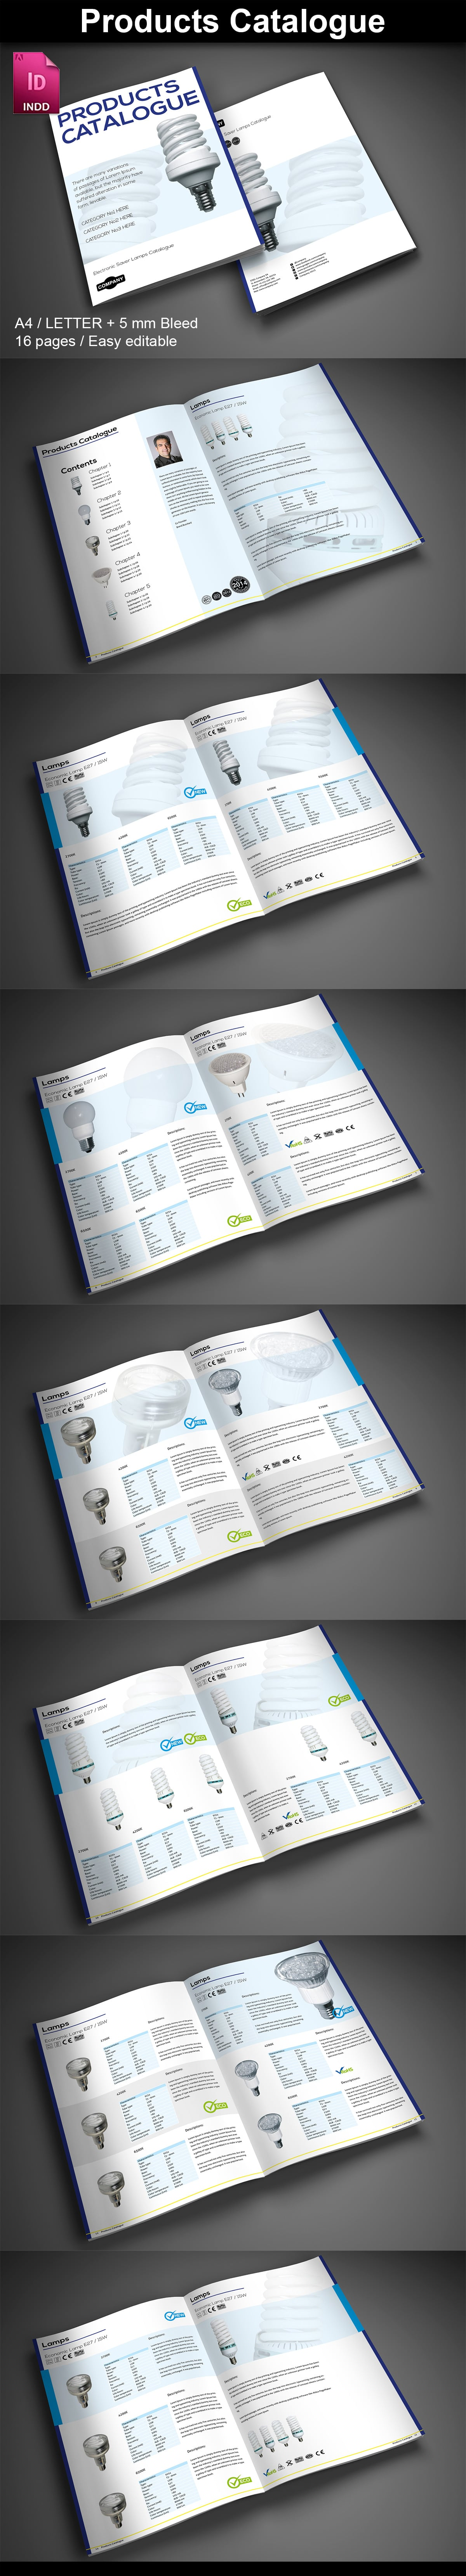 15  InDesign Product Catalogs - just $19 - 07 Products7 ImagePreview